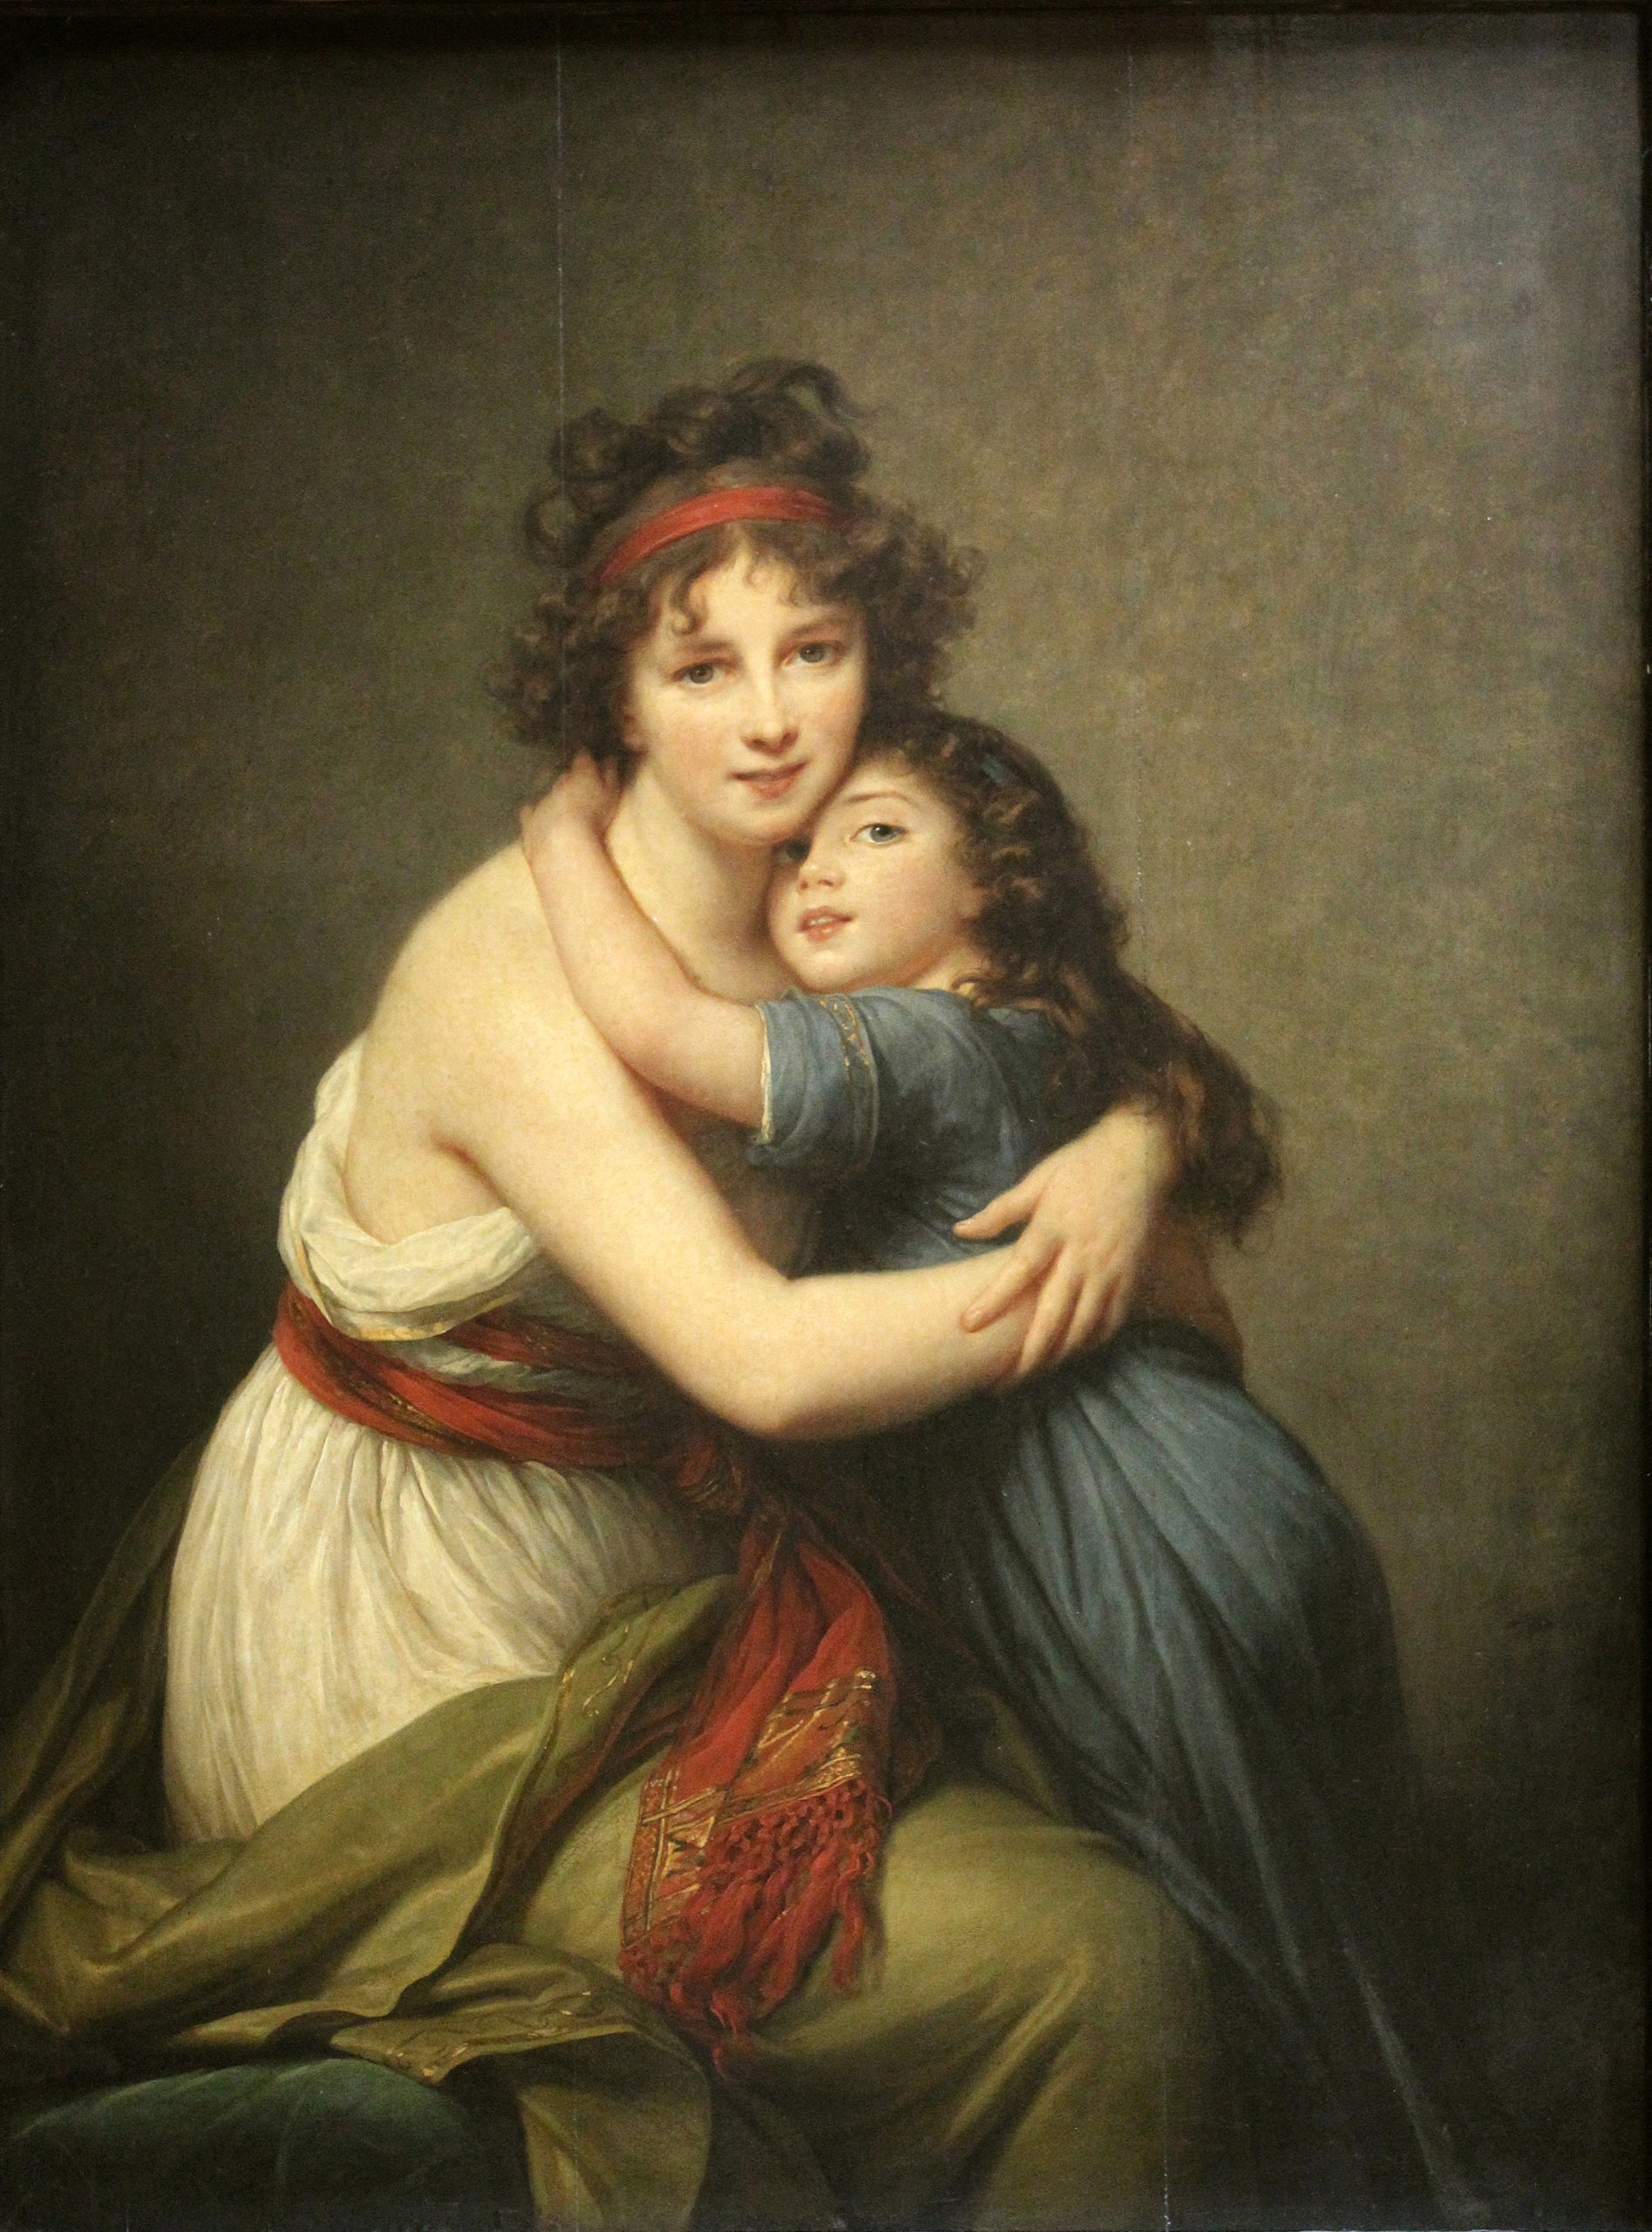 Elisabeth Vigée Le Brun, Self-Portrait with Her Daughter Julie (á l'Antique), 1789, oil on wood, 130 x 94 cm (Musée du Louvre, Paris)